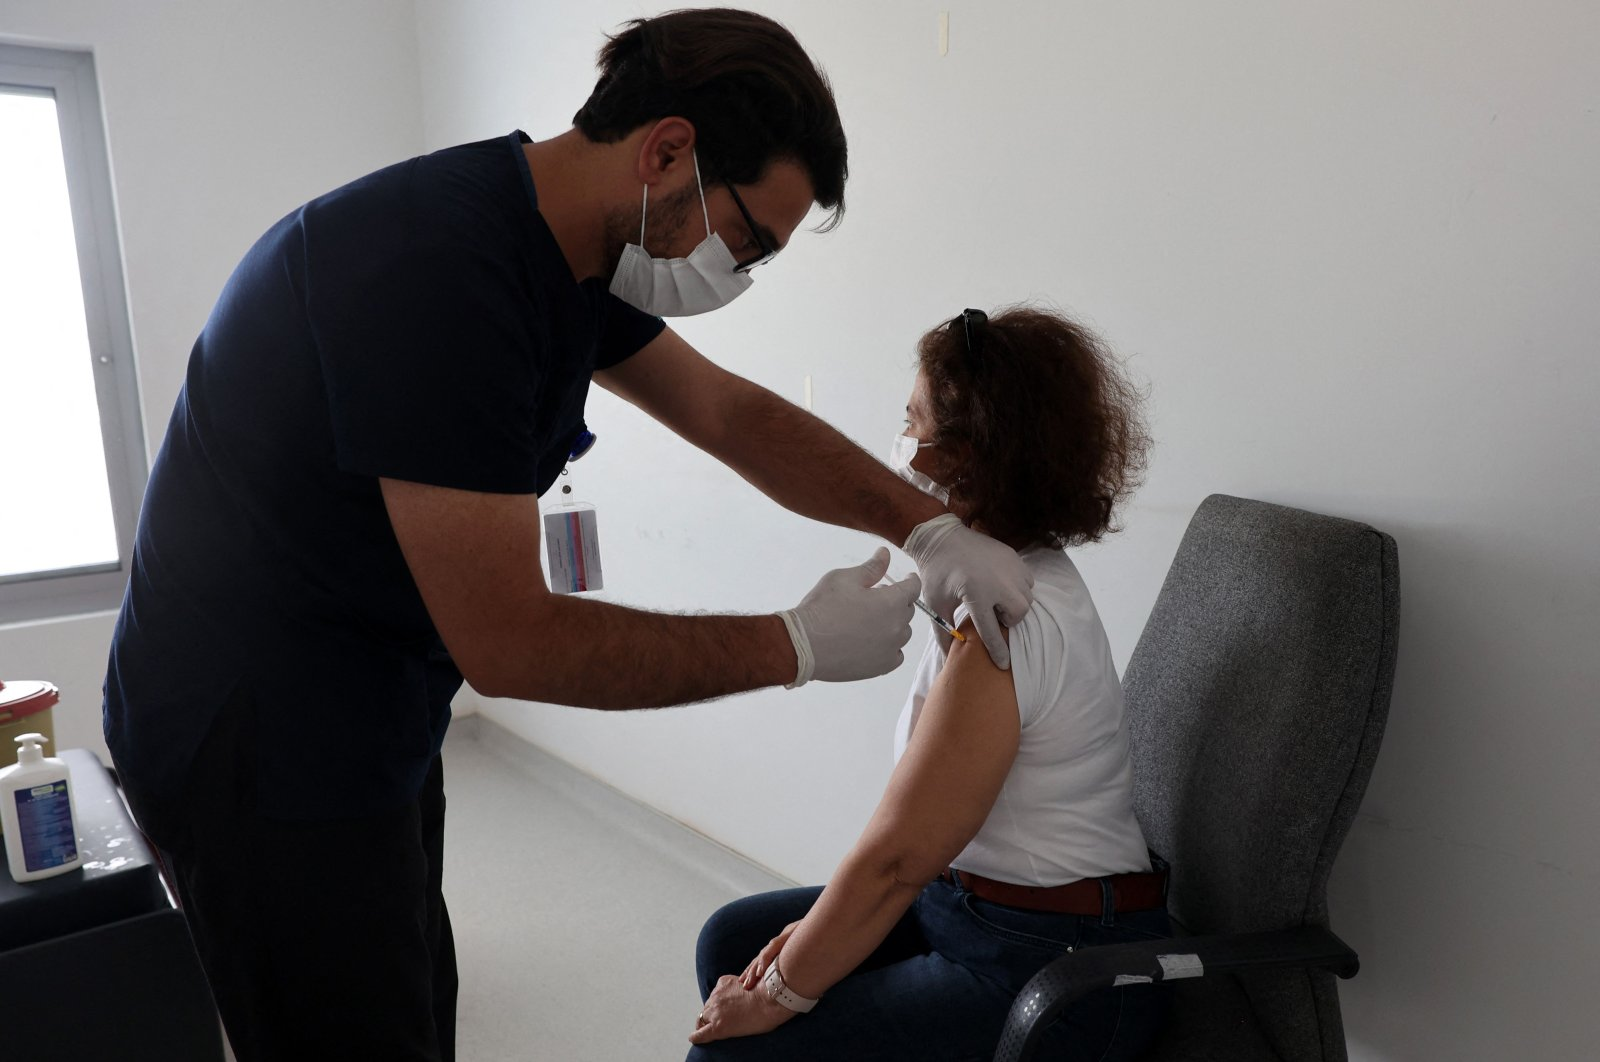 A woman receives a dose of the Pfizer-BionNTech COVID-19 vaccine at a hospital in the capital Ankara, Turkey, May 3, 2021. (AFP PHOTO)